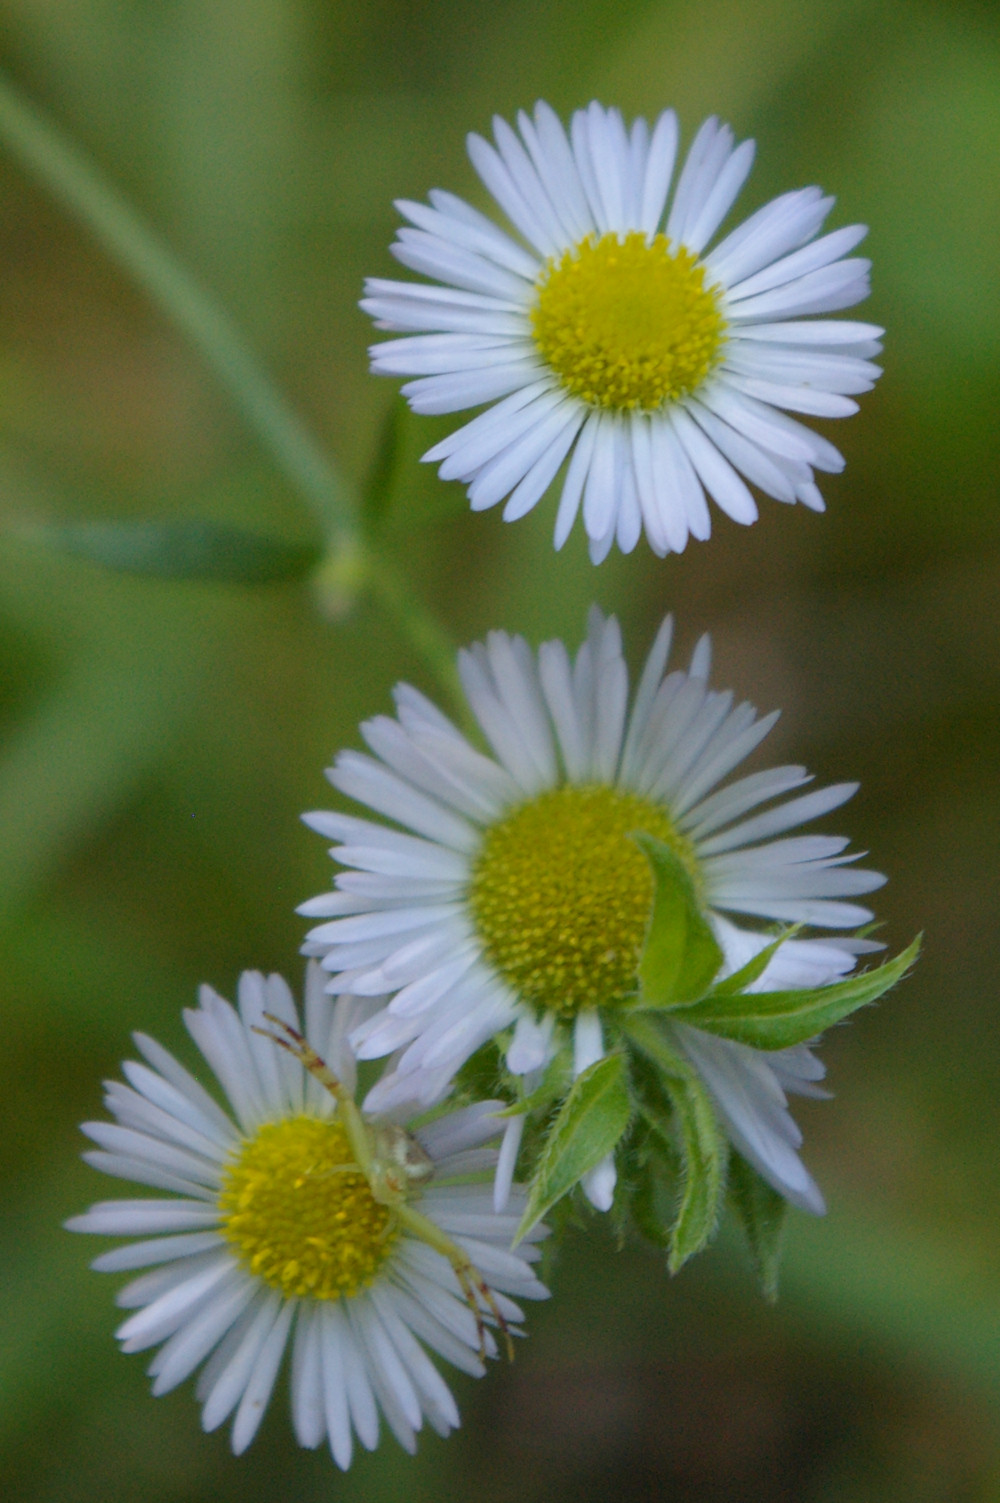 IMGP2741.jpg - Daisy fleabane  (Erigeron annuus (L.) Pers.)  with a Goldenrod Crab Spider